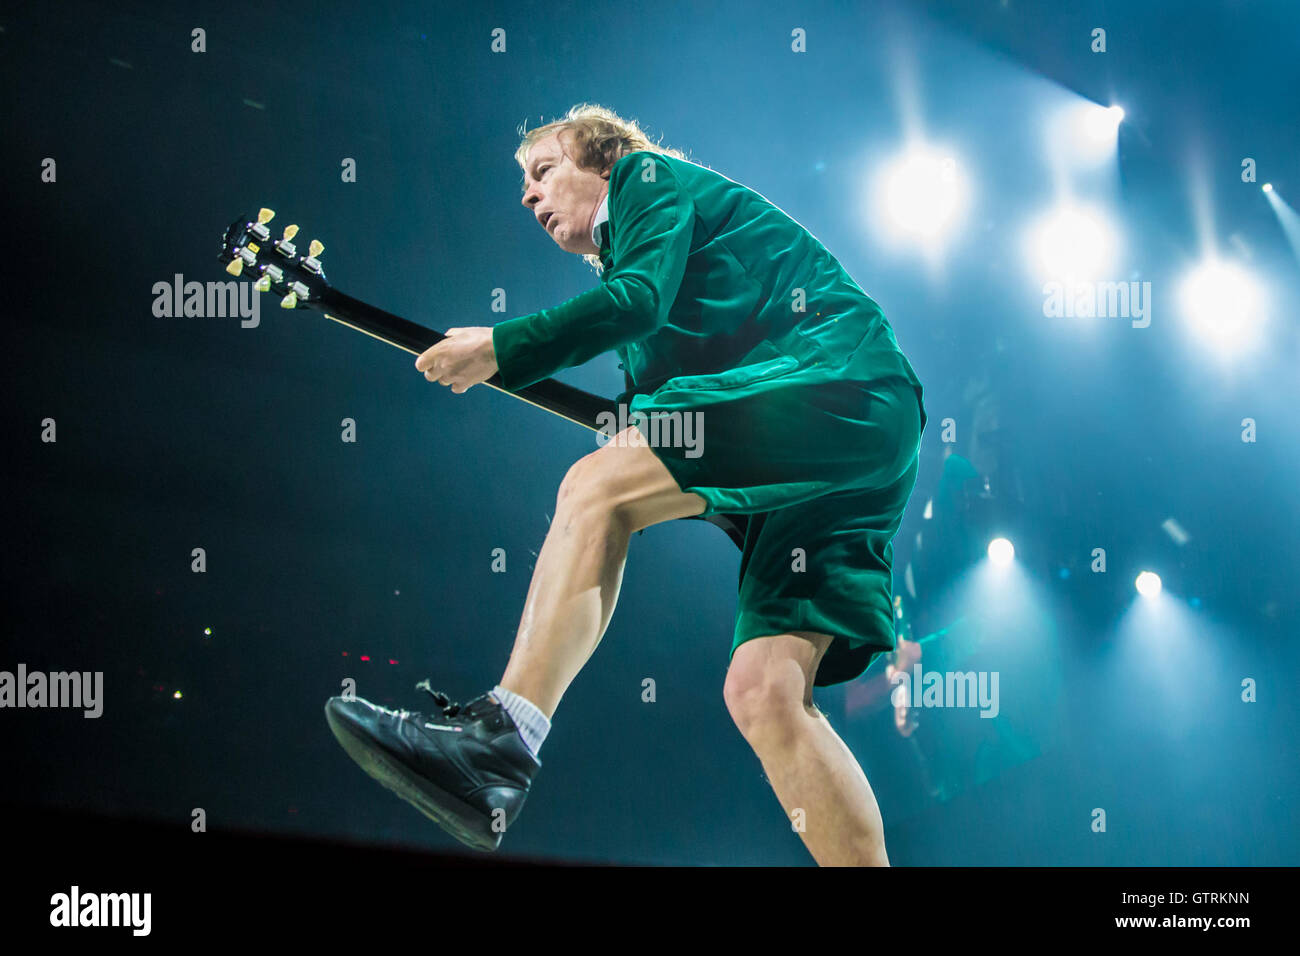 Acdc Angus Young Stock Photos & Acdc Angus Young Stock Images - Alamy